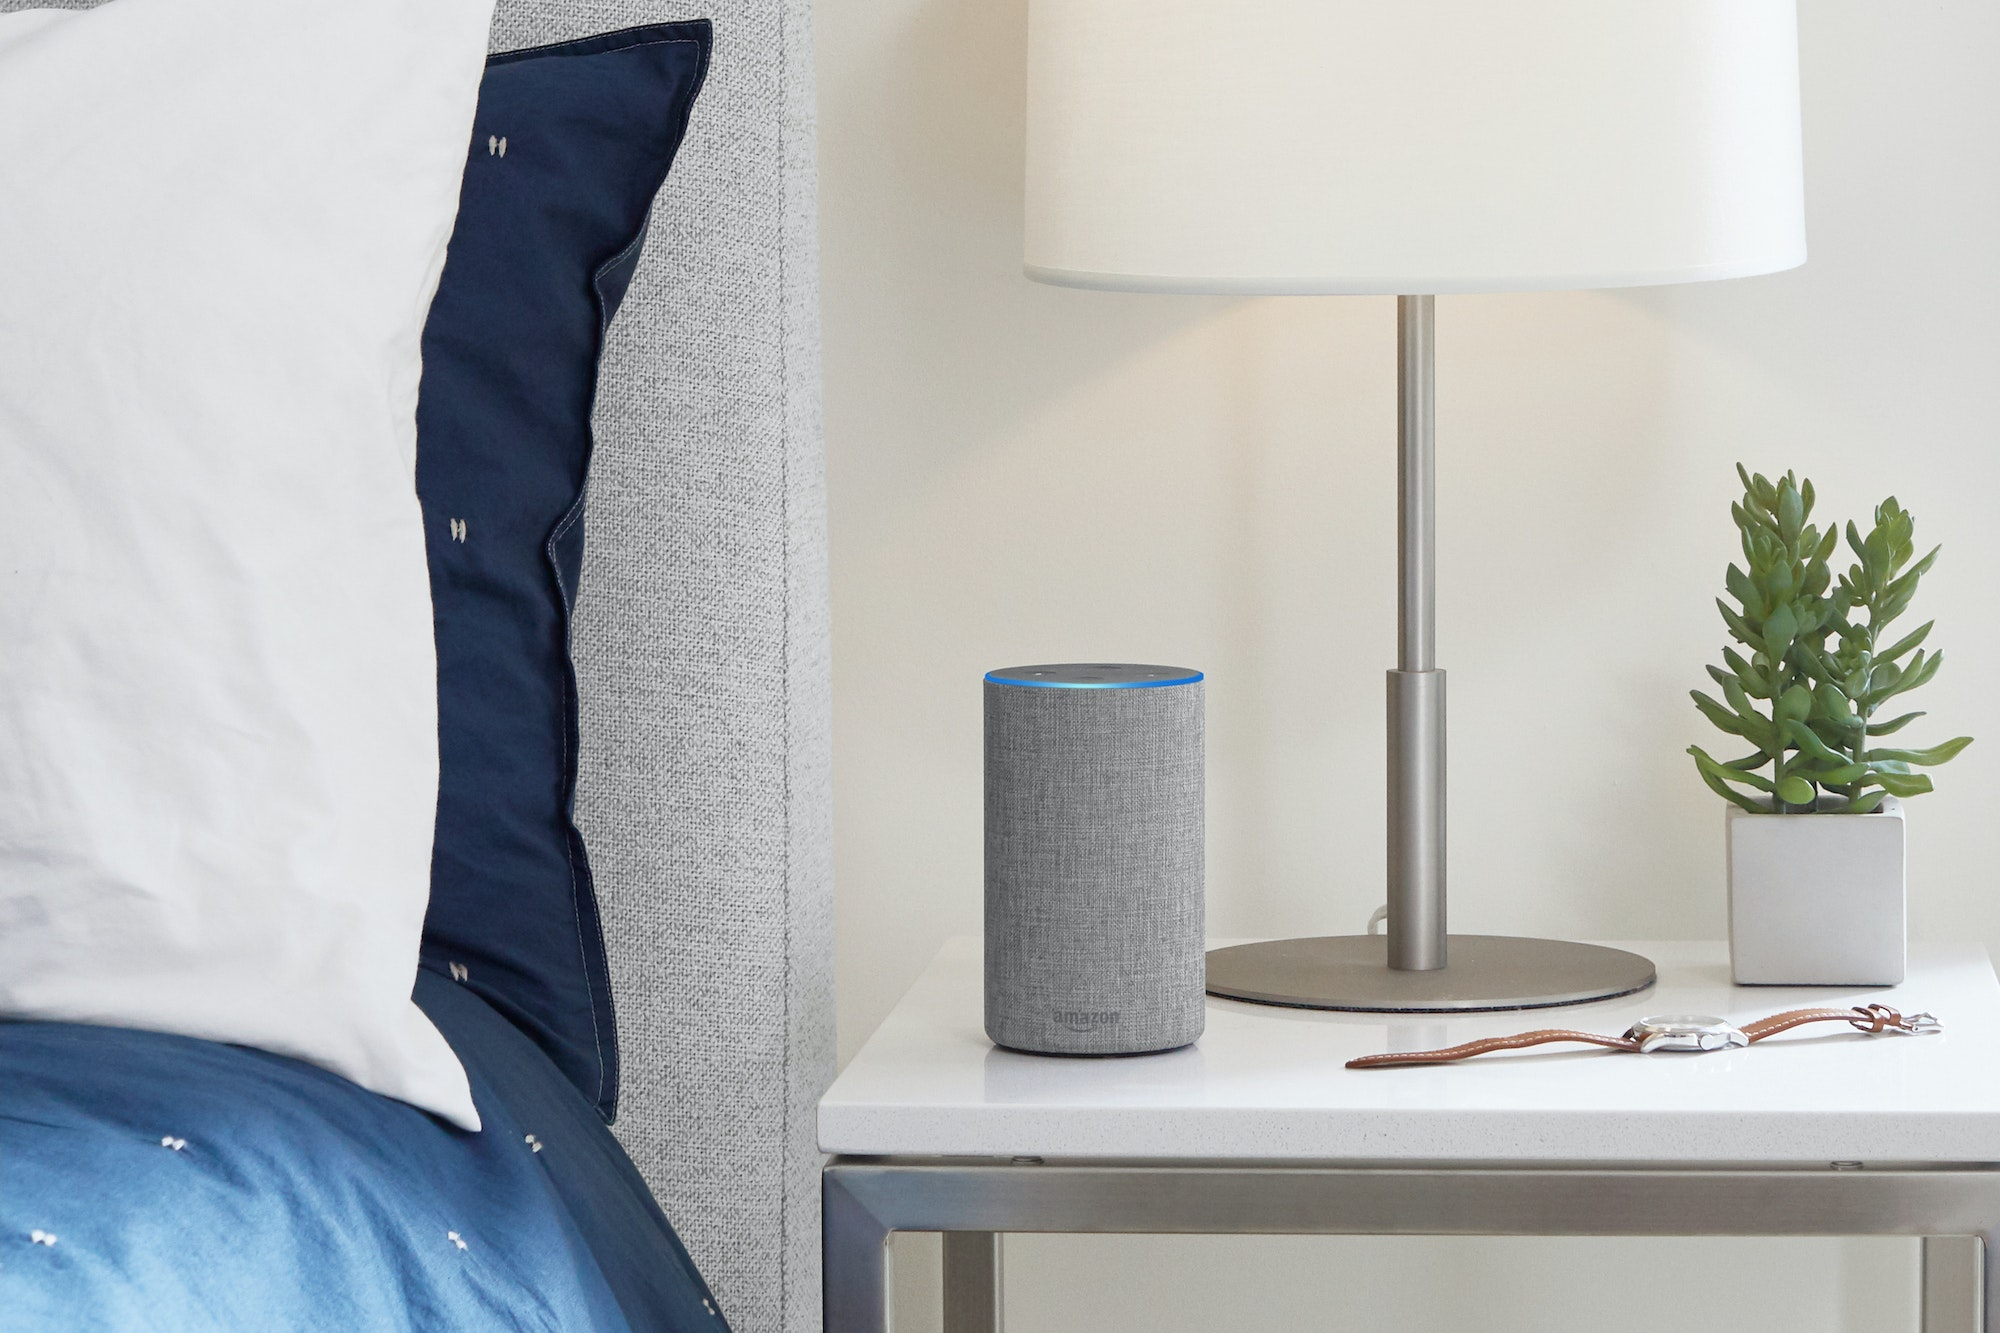 Hospitality providers will have the option to allow their guests to personalize their Alexa in-room experience.